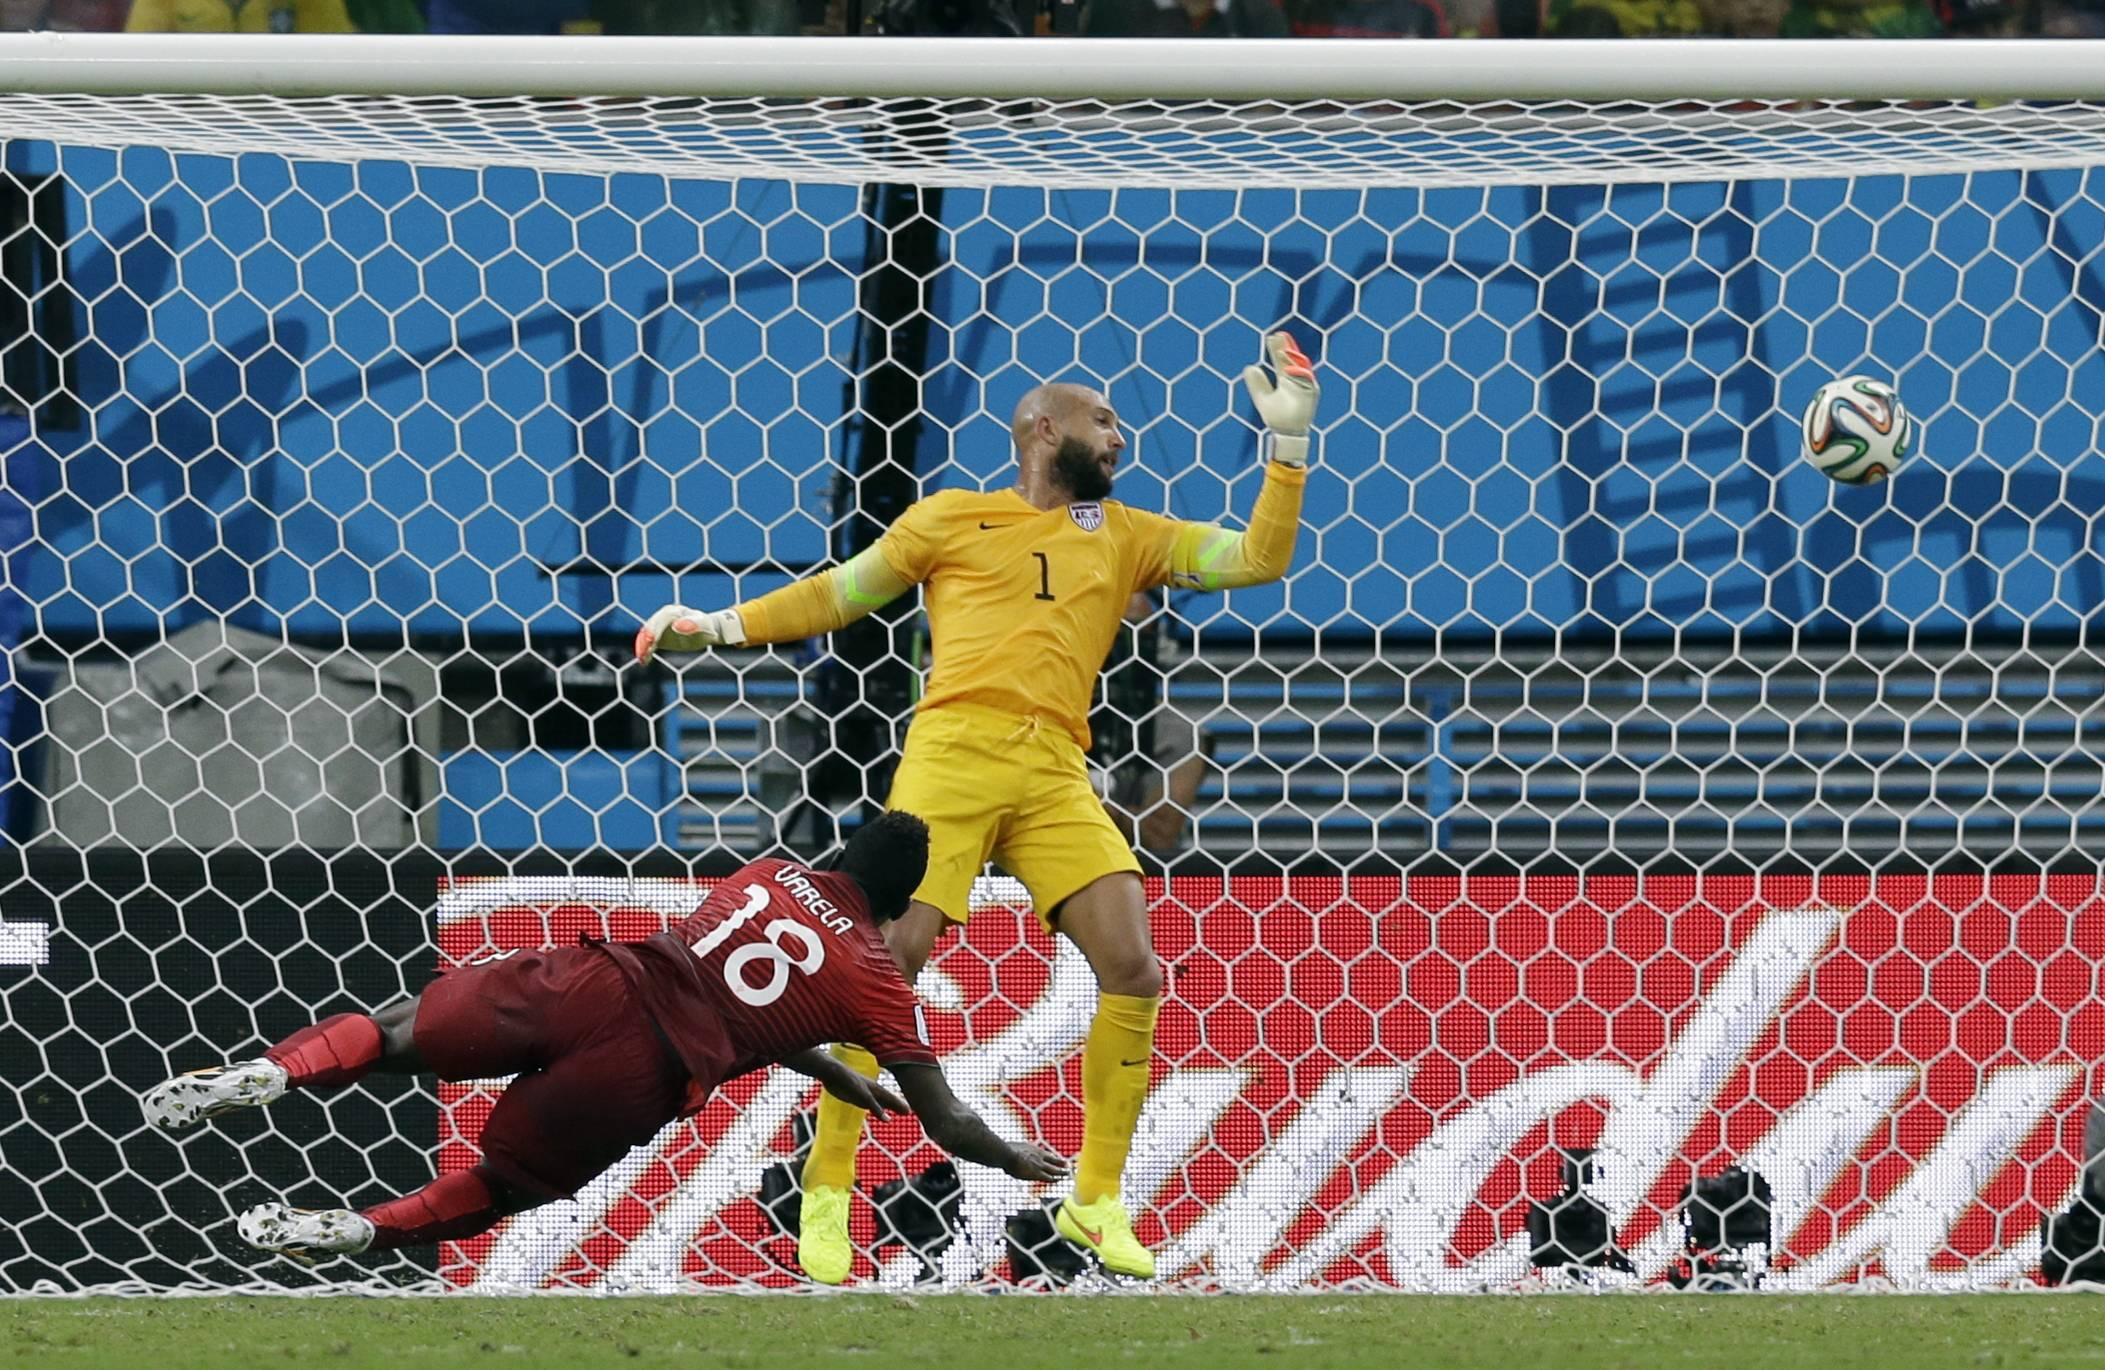 Portugal's Silvestre Varela heads the ball past United States goalkeeper Tim Howard to score his side's second goal Sunday and tie the game at 2-2 during the group G World Cup soccer match between the USA and Portugal at the Arena da Amazonia in Manaus, Brazil.